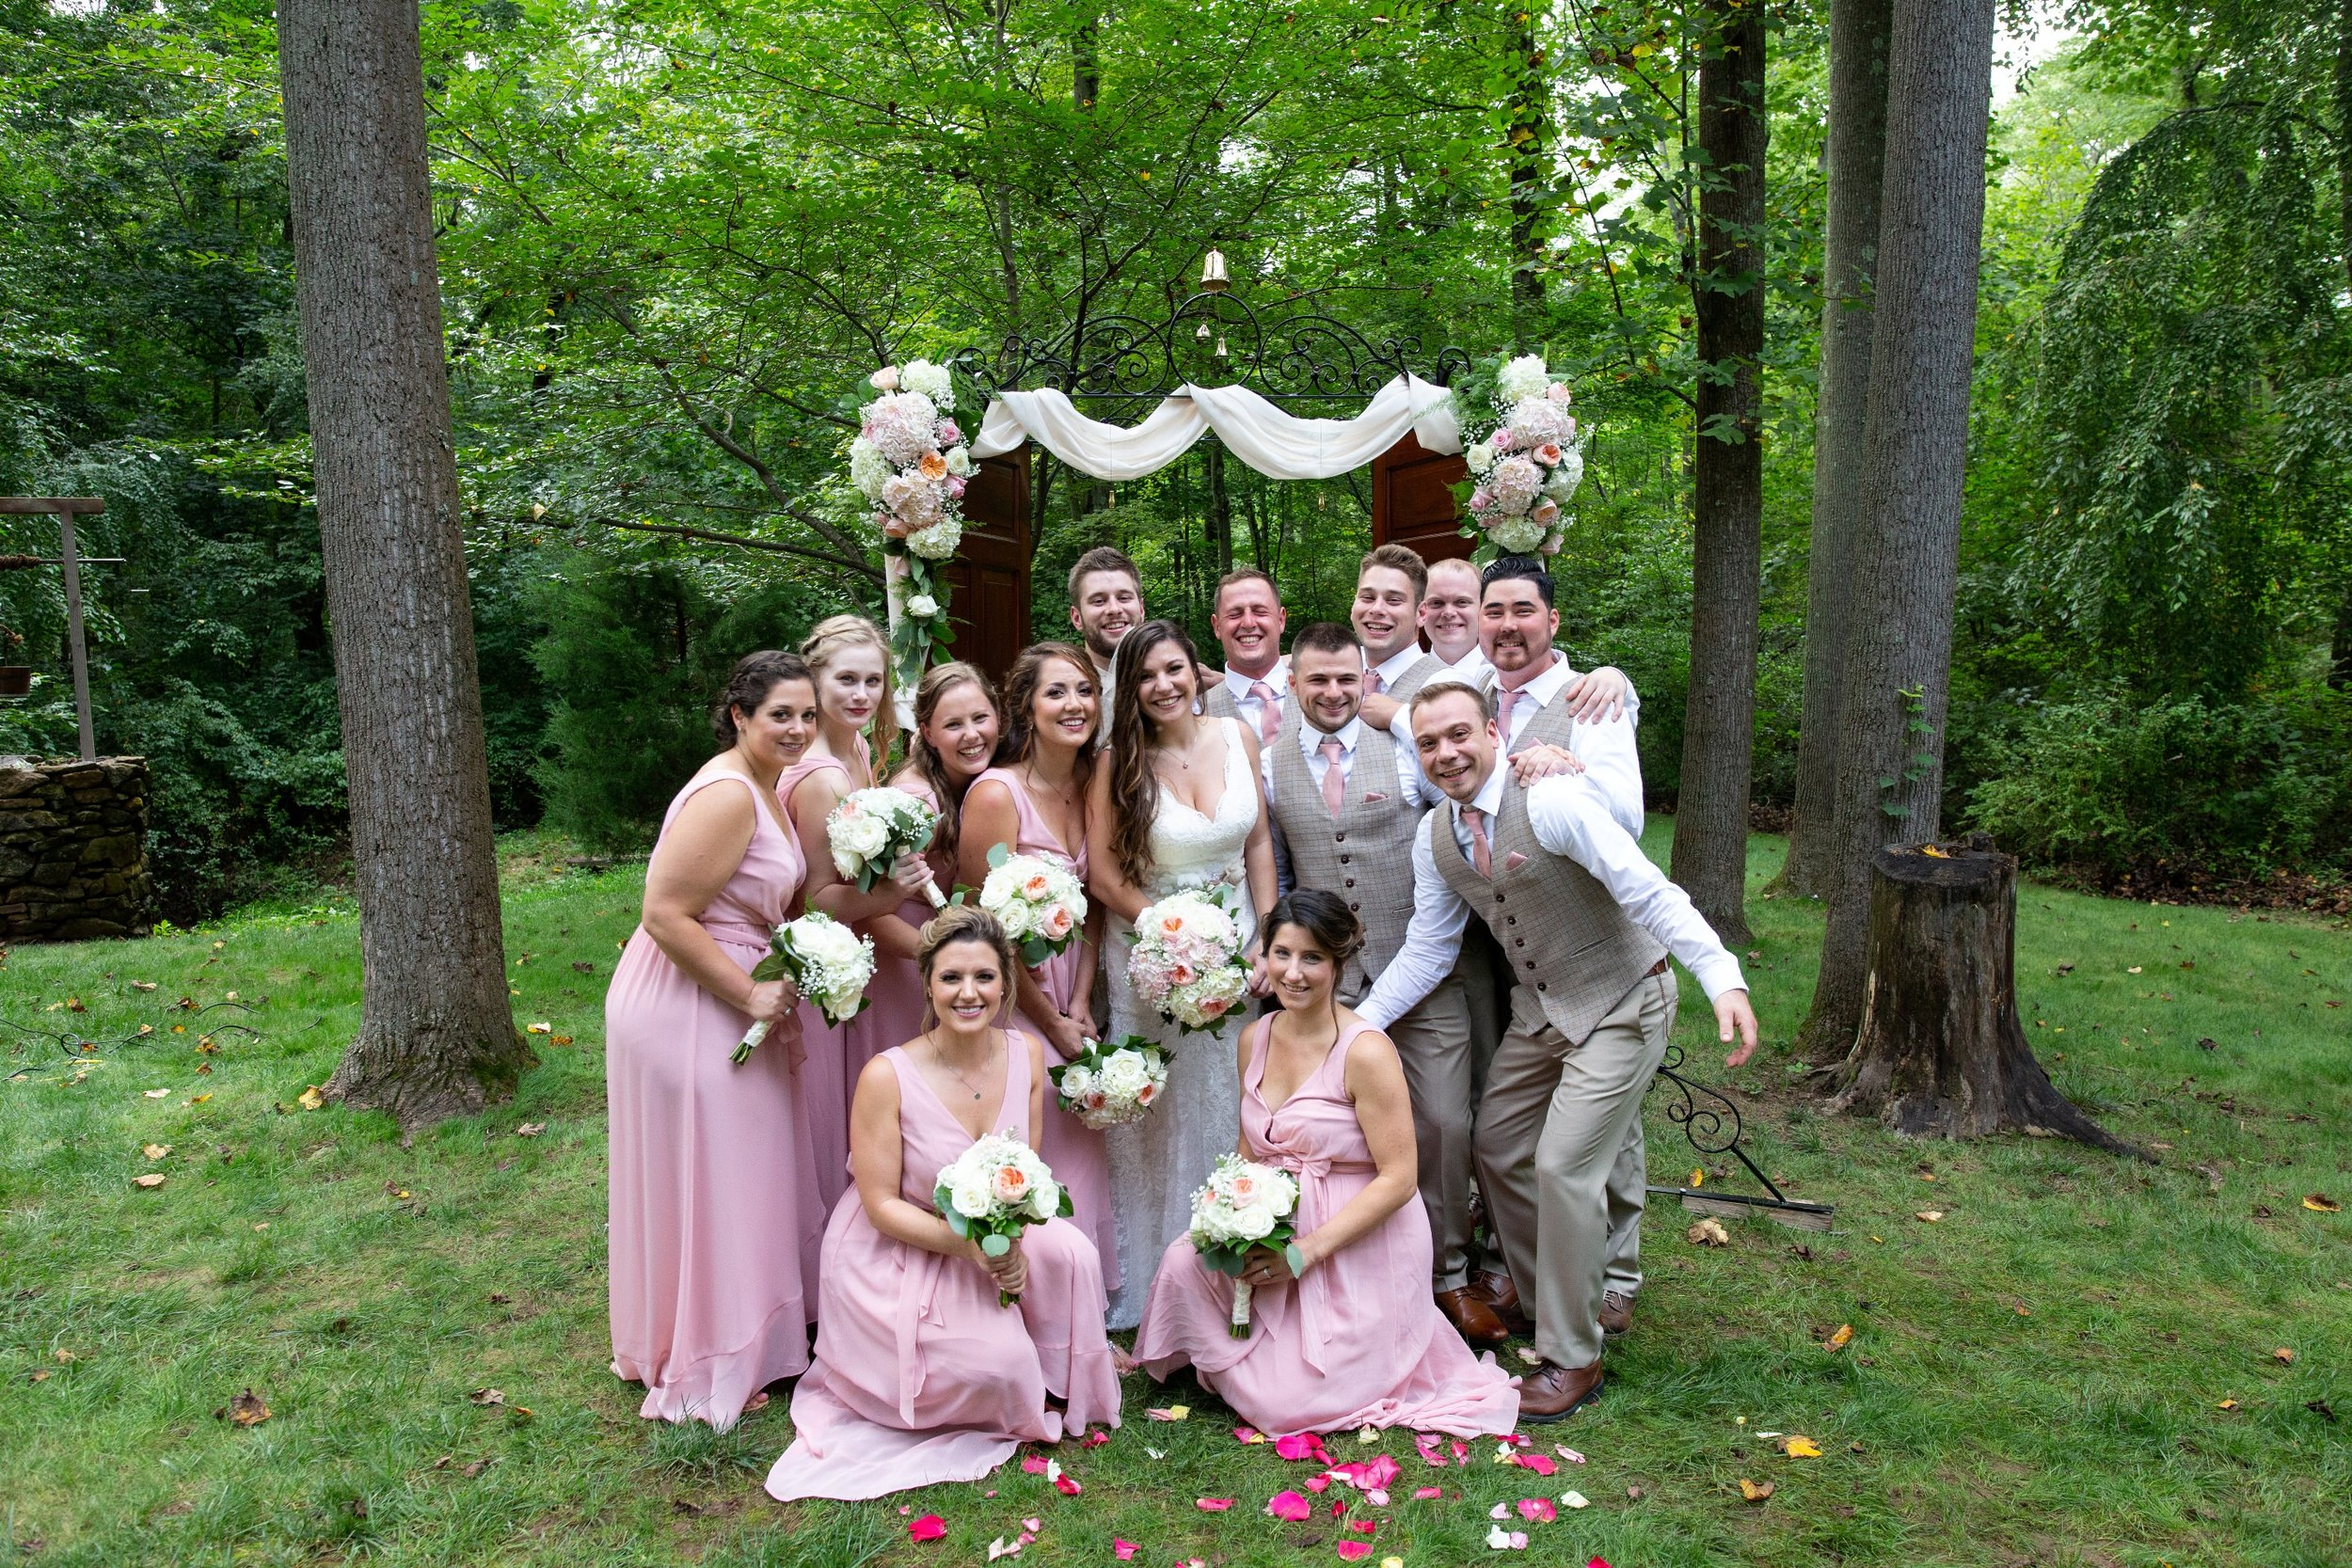 bridal party photo ideas